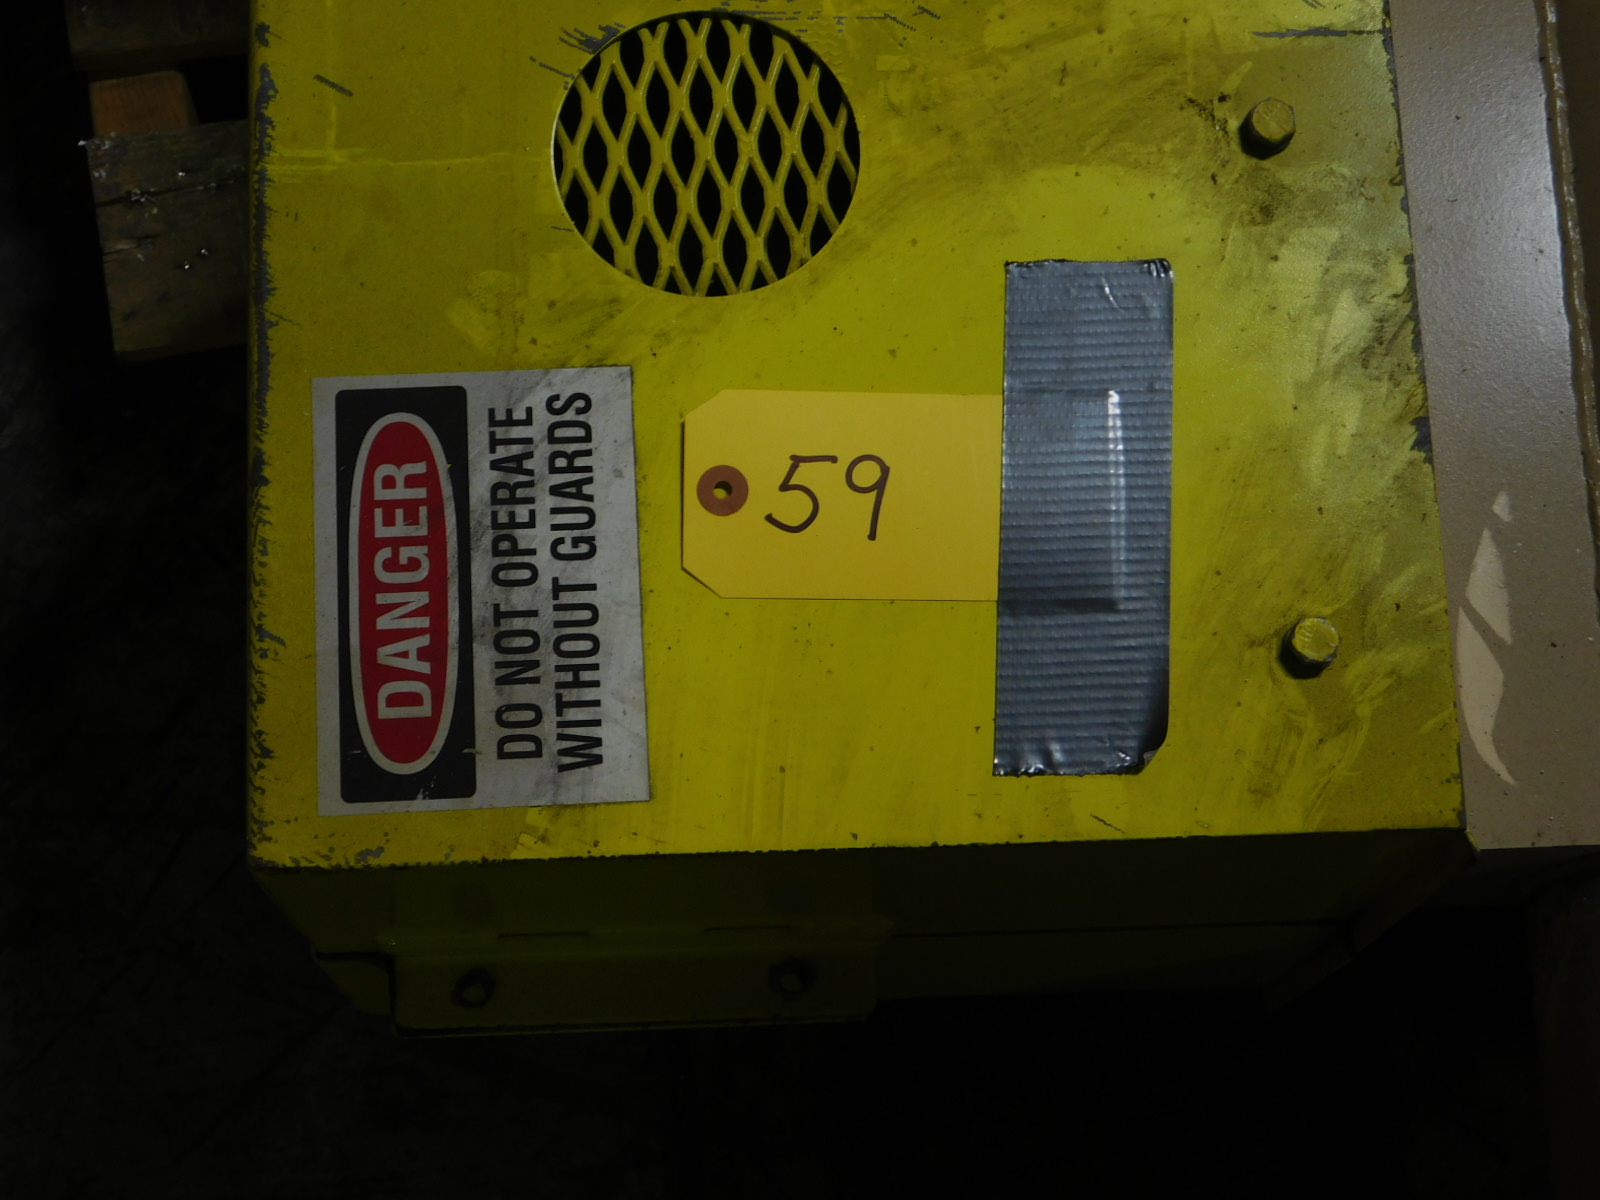 Lot 59 - Dynamet Lot of 2 Pipes and motor internal l box :equipment located at Clark Logistic Services |314-